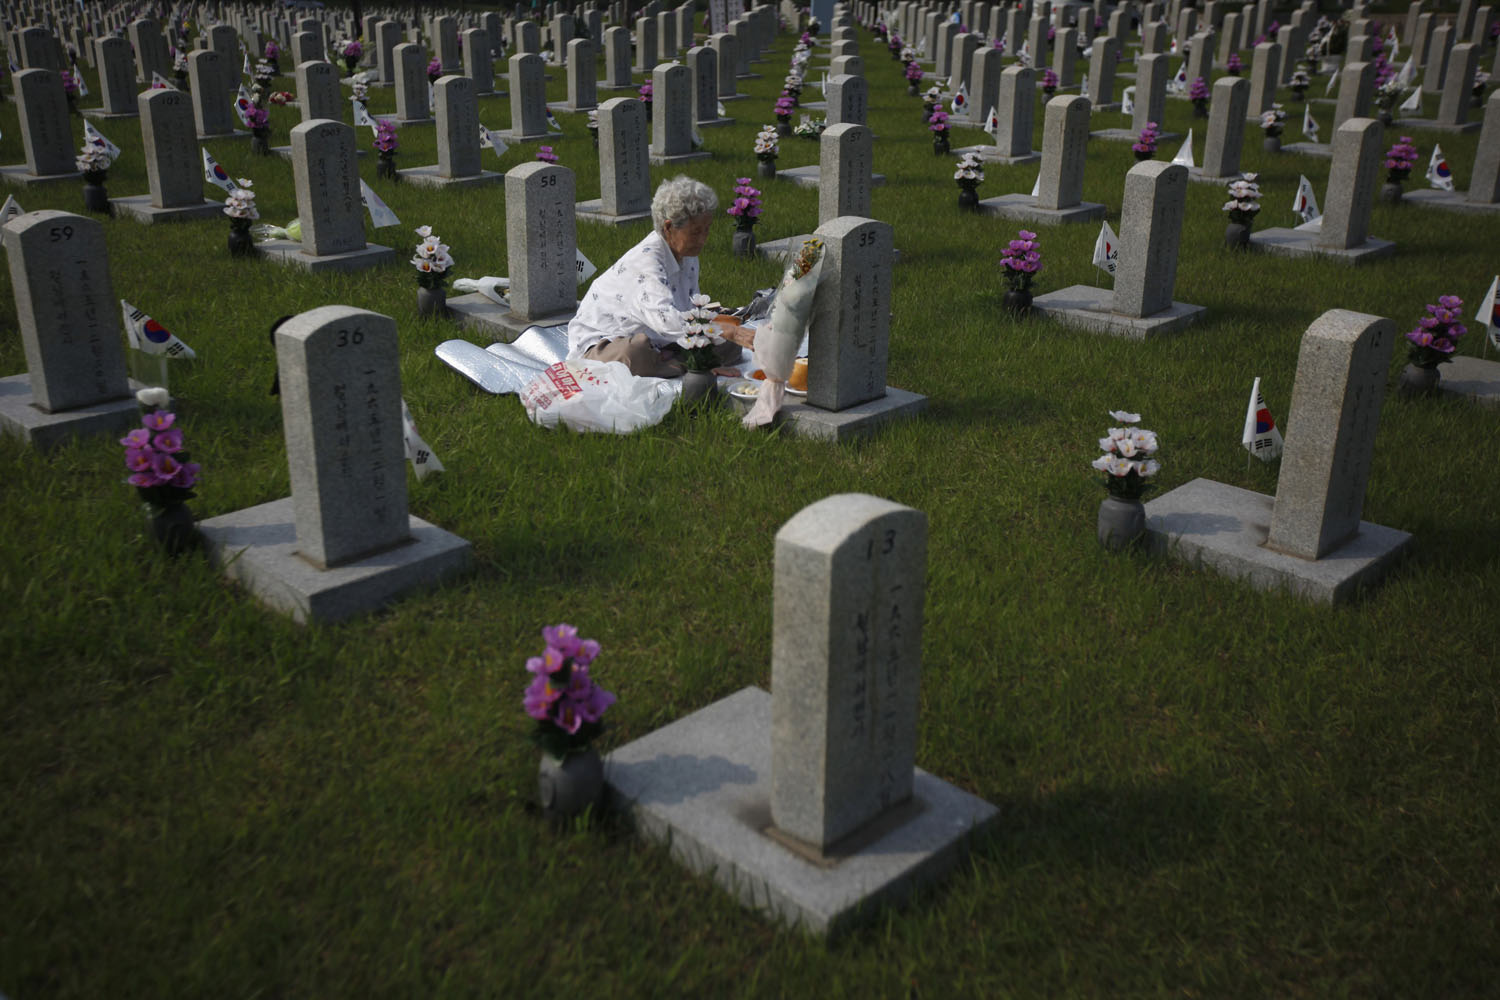 June 5, 2013. A woman pays her respects in front of the gravestone of her son who died for the country, at the national cemetery in Seoul, on the eve of South Korea's Memorial Day to commemorate fallen patriots.